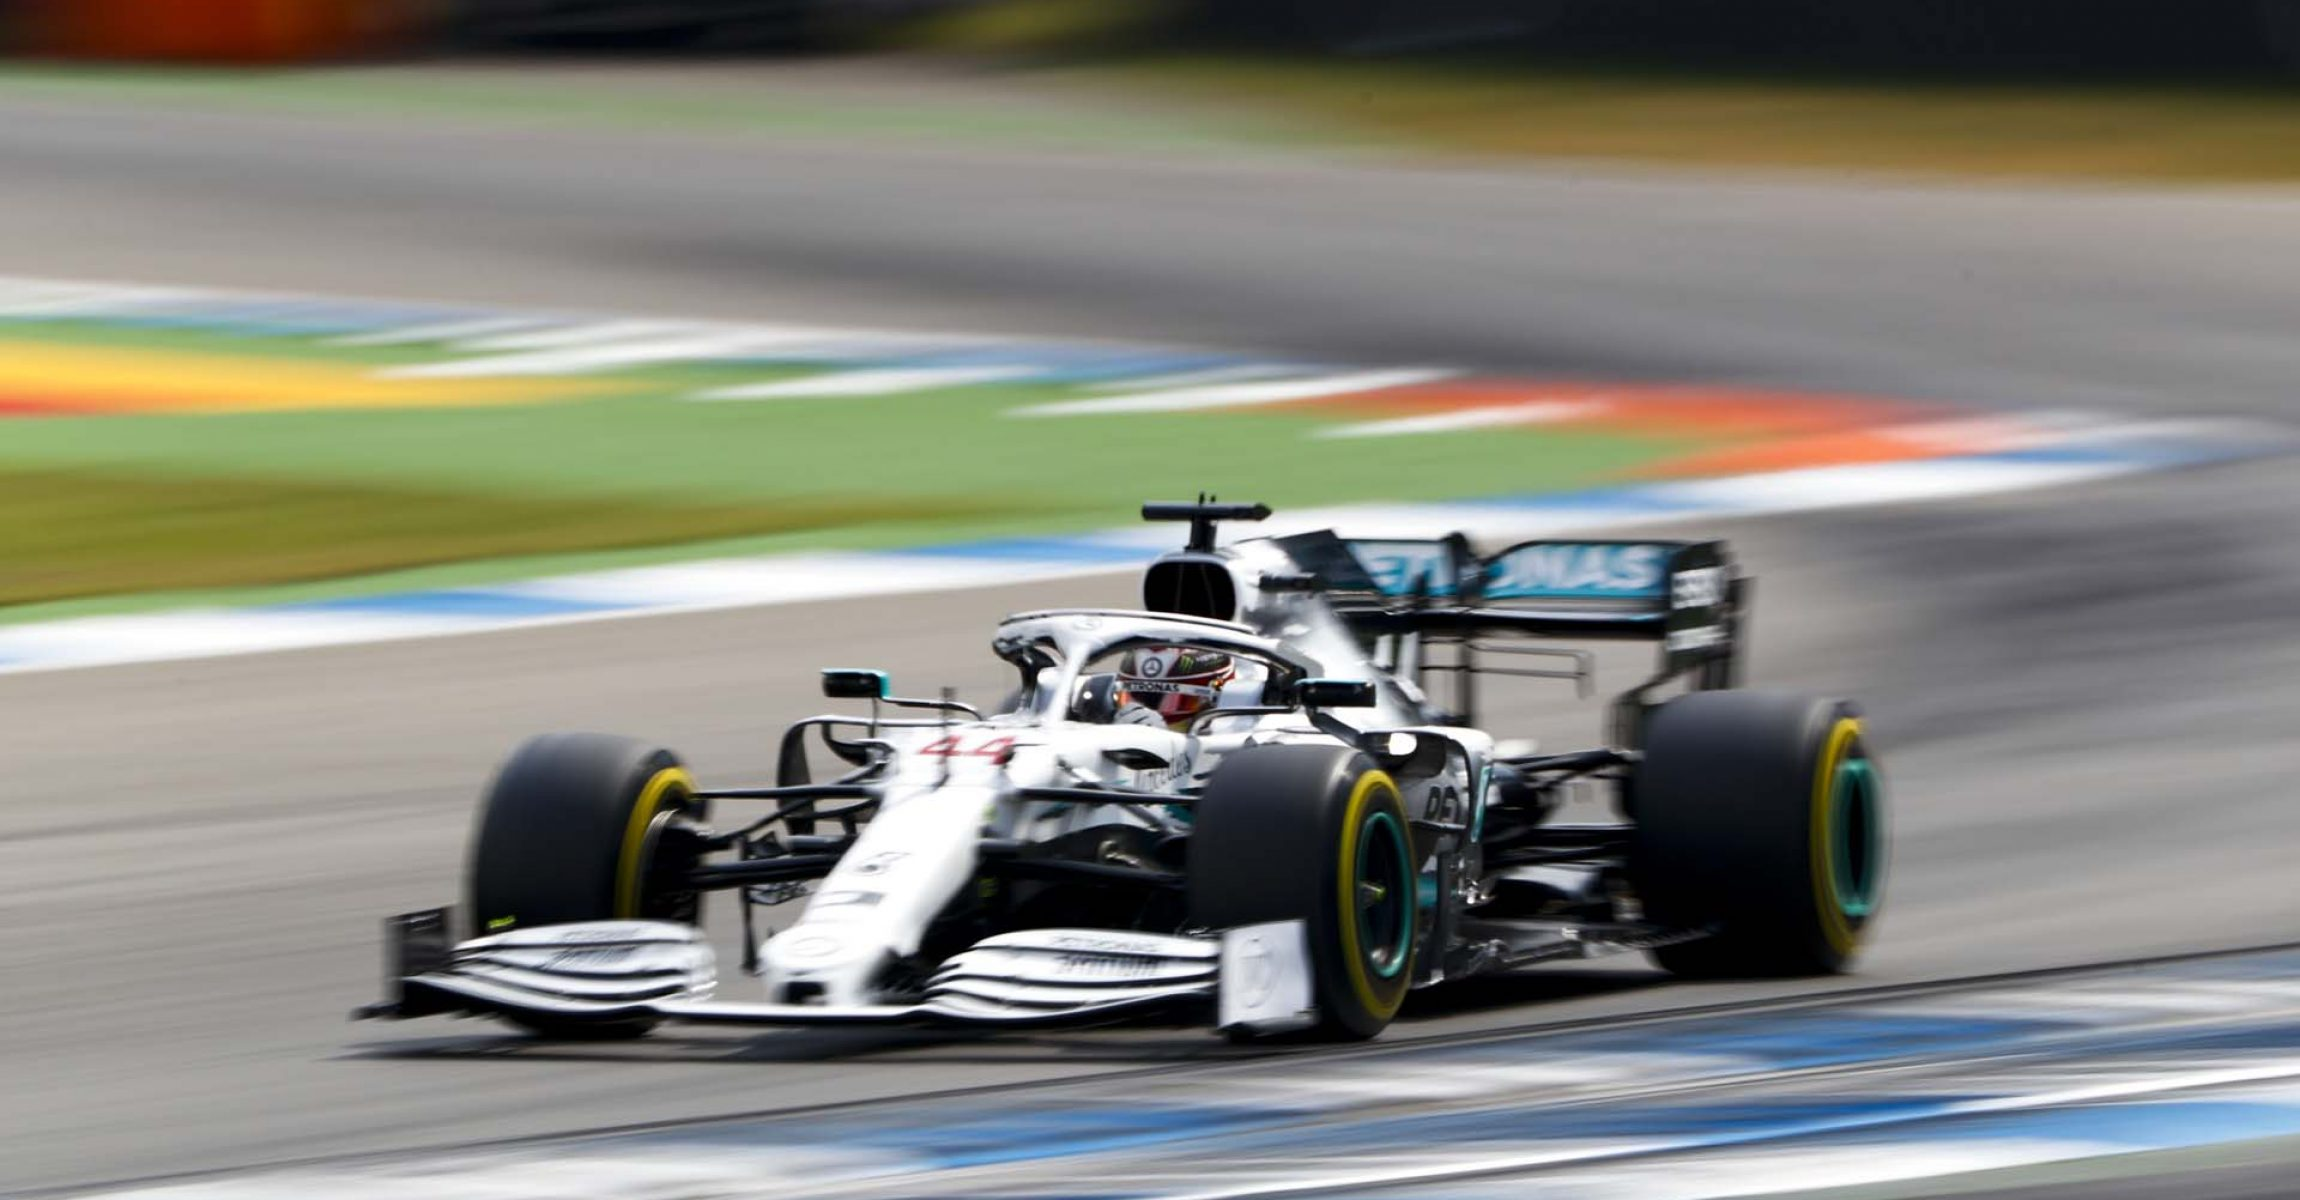 HOCKENHEIMRING, GERMANY - JULY 27: Lewis Hamilton, Mercedes AMG F1 W10 during the German GP at Hockenheimring on July 27, 2019 in Hockenheimring, Germany. (Photo by Sam Bloxham / LAT Images)